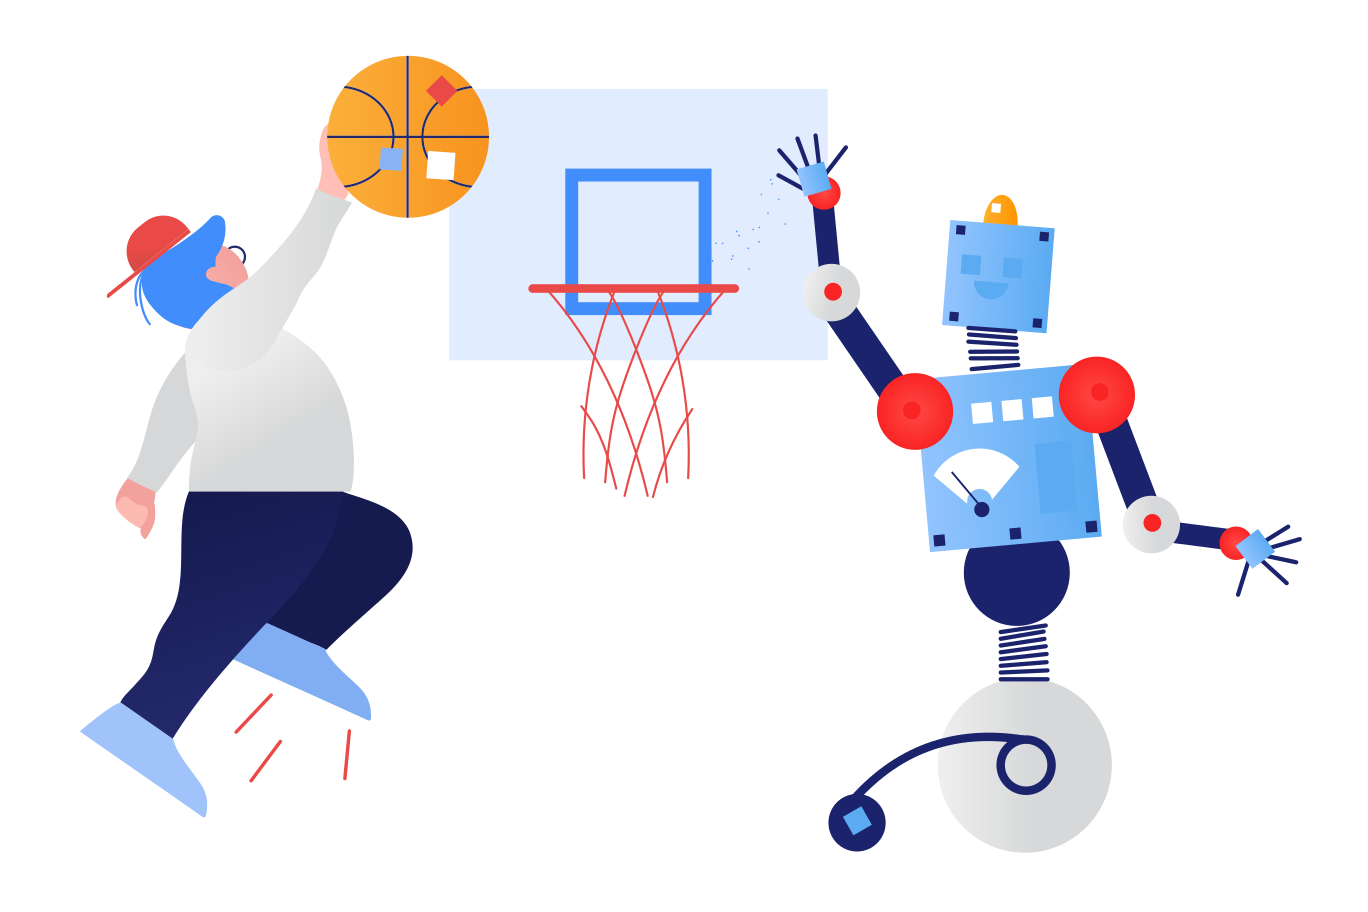 Robot playing basketball Clipart illustration in PNG, SVG